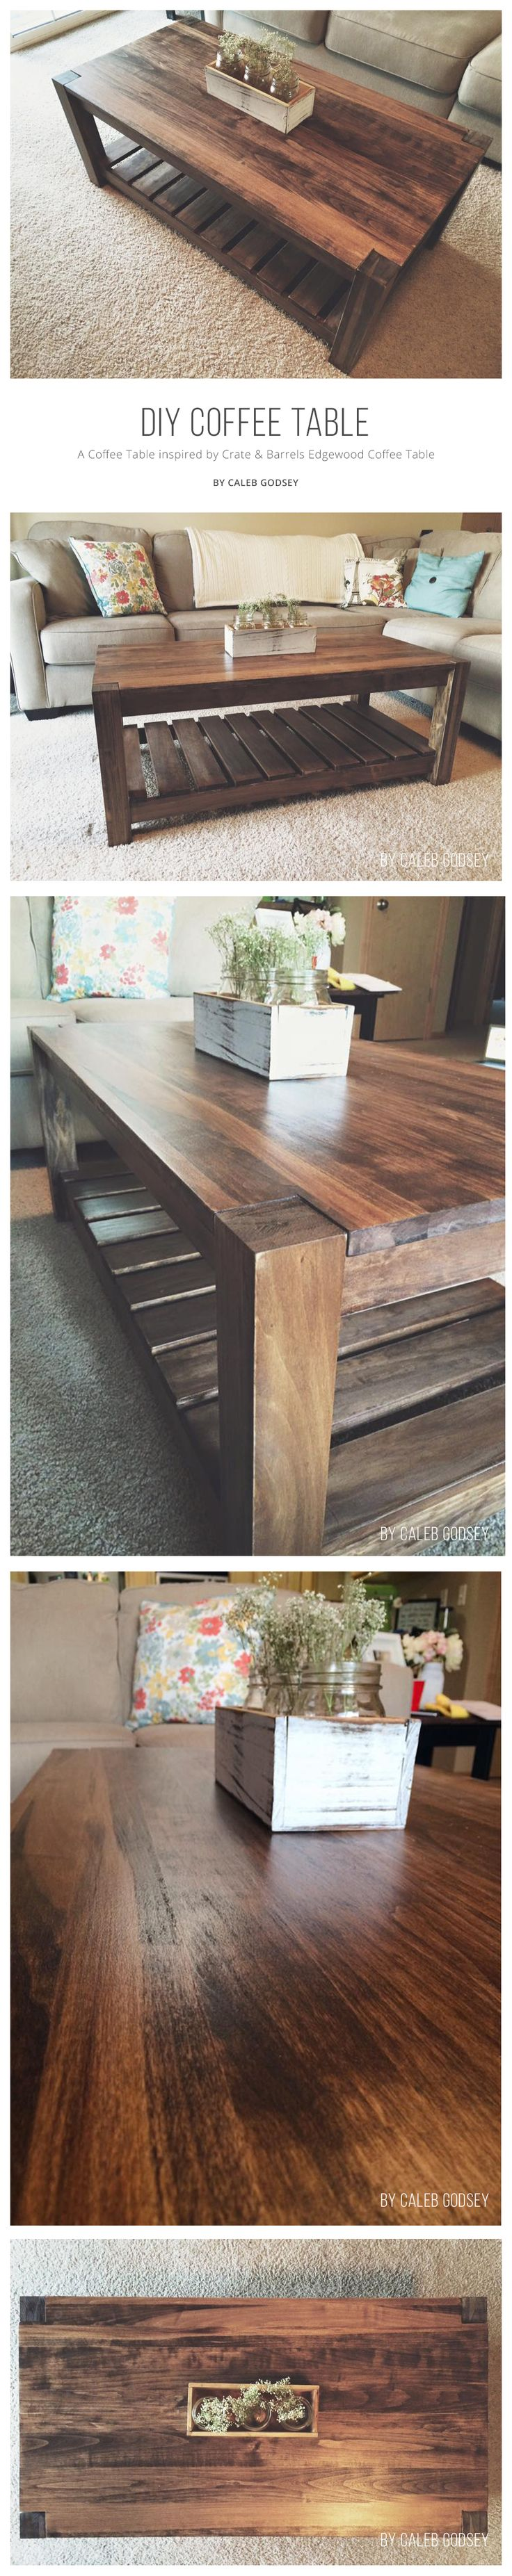 Best 25 diy coffee table ideas on pinterest diy projects coffee a beautiful aspen and pine diy coffee table inspired by crate barrels edgewood coffee table geotapseo Gallery